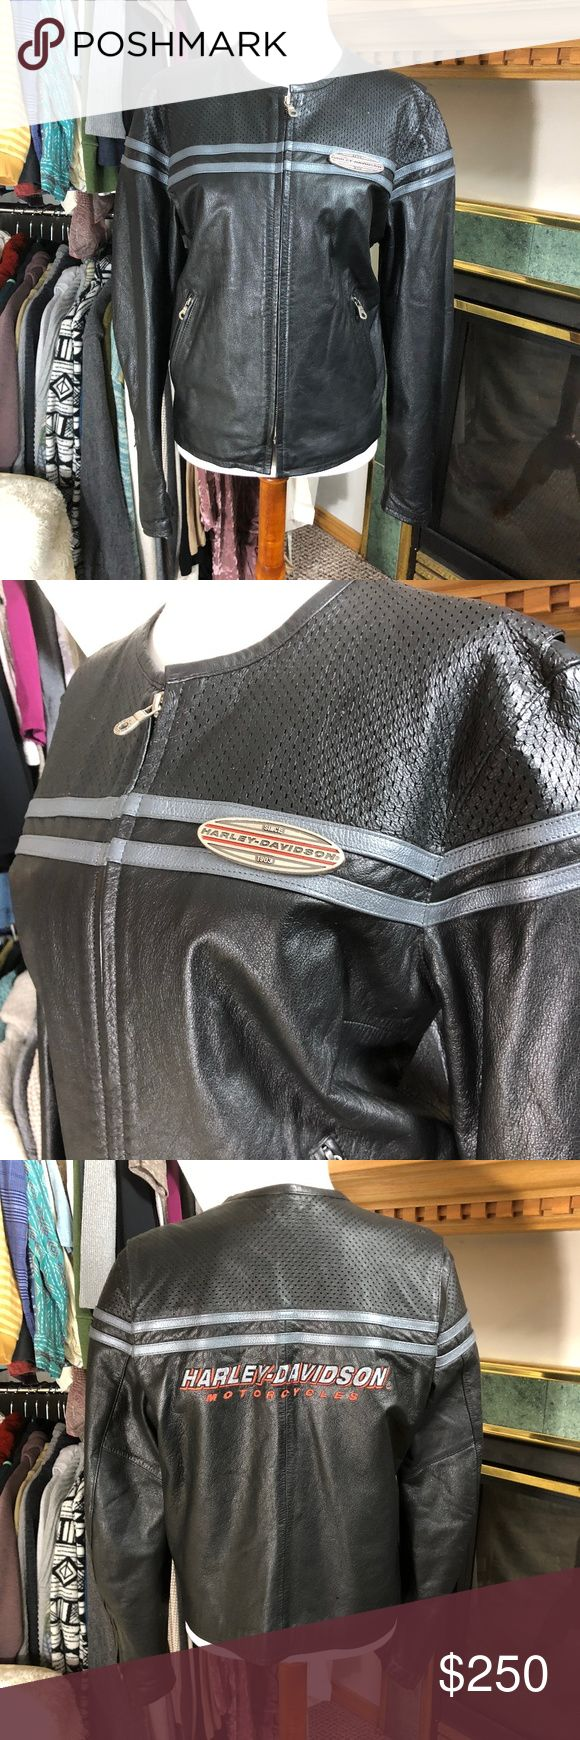 Harley Davidson Leather Jacket No signs of wear that I can see. Make an offer, ya never know! Thank you for your interest! No Trades, No Low Ballers, No Spamming, No Holds, No communications outside of Poshmark. Offers considered through offer button only. Mannequin is of standard size small. I do not supply garment measurements beyond that because I just don't have time! Thank you for your interest <3 Harley-Davidson Jackets & Coats